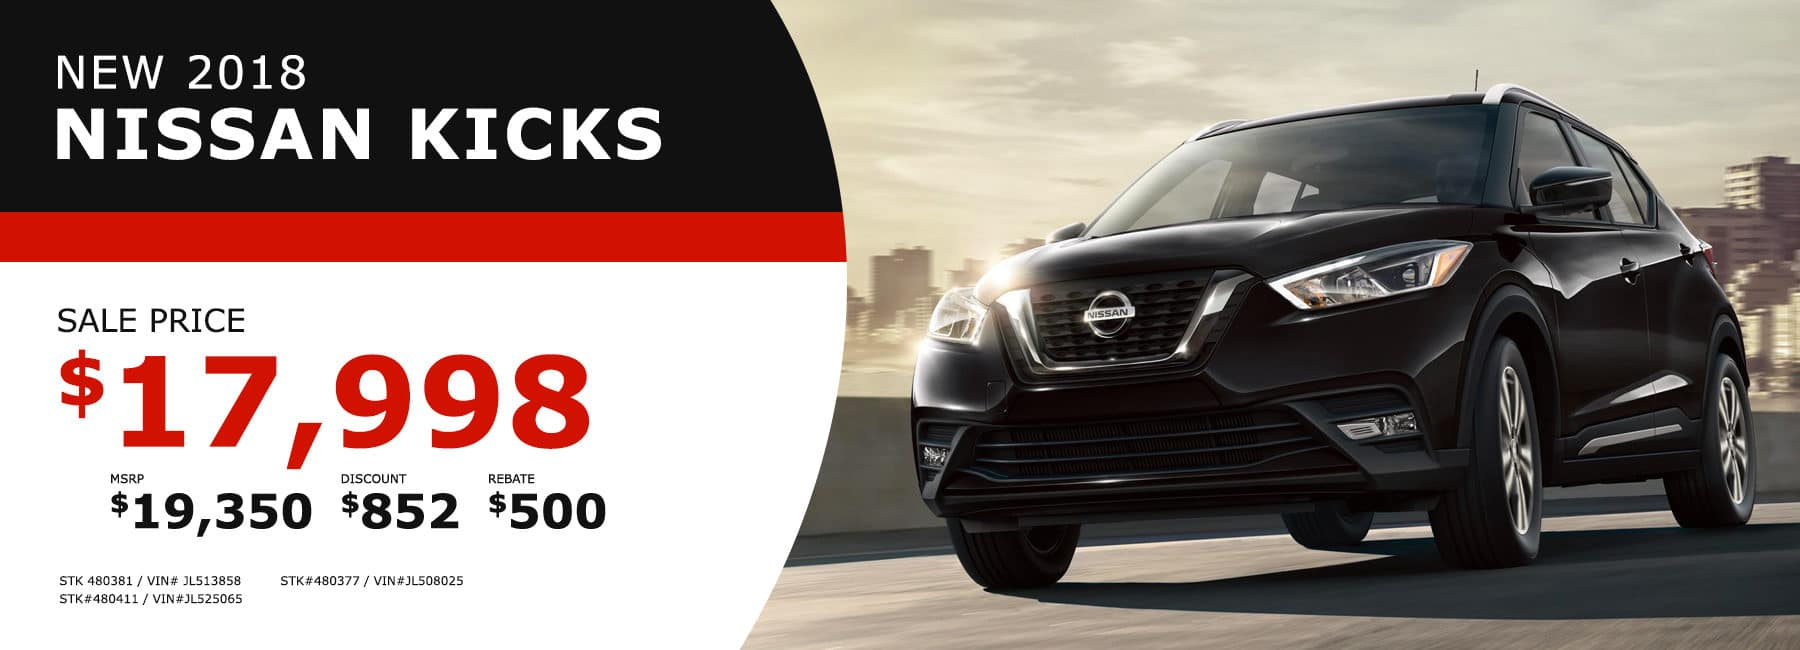 Nissan New Cars Santa Clarita CA | Nissan Near Me | Service And Parts